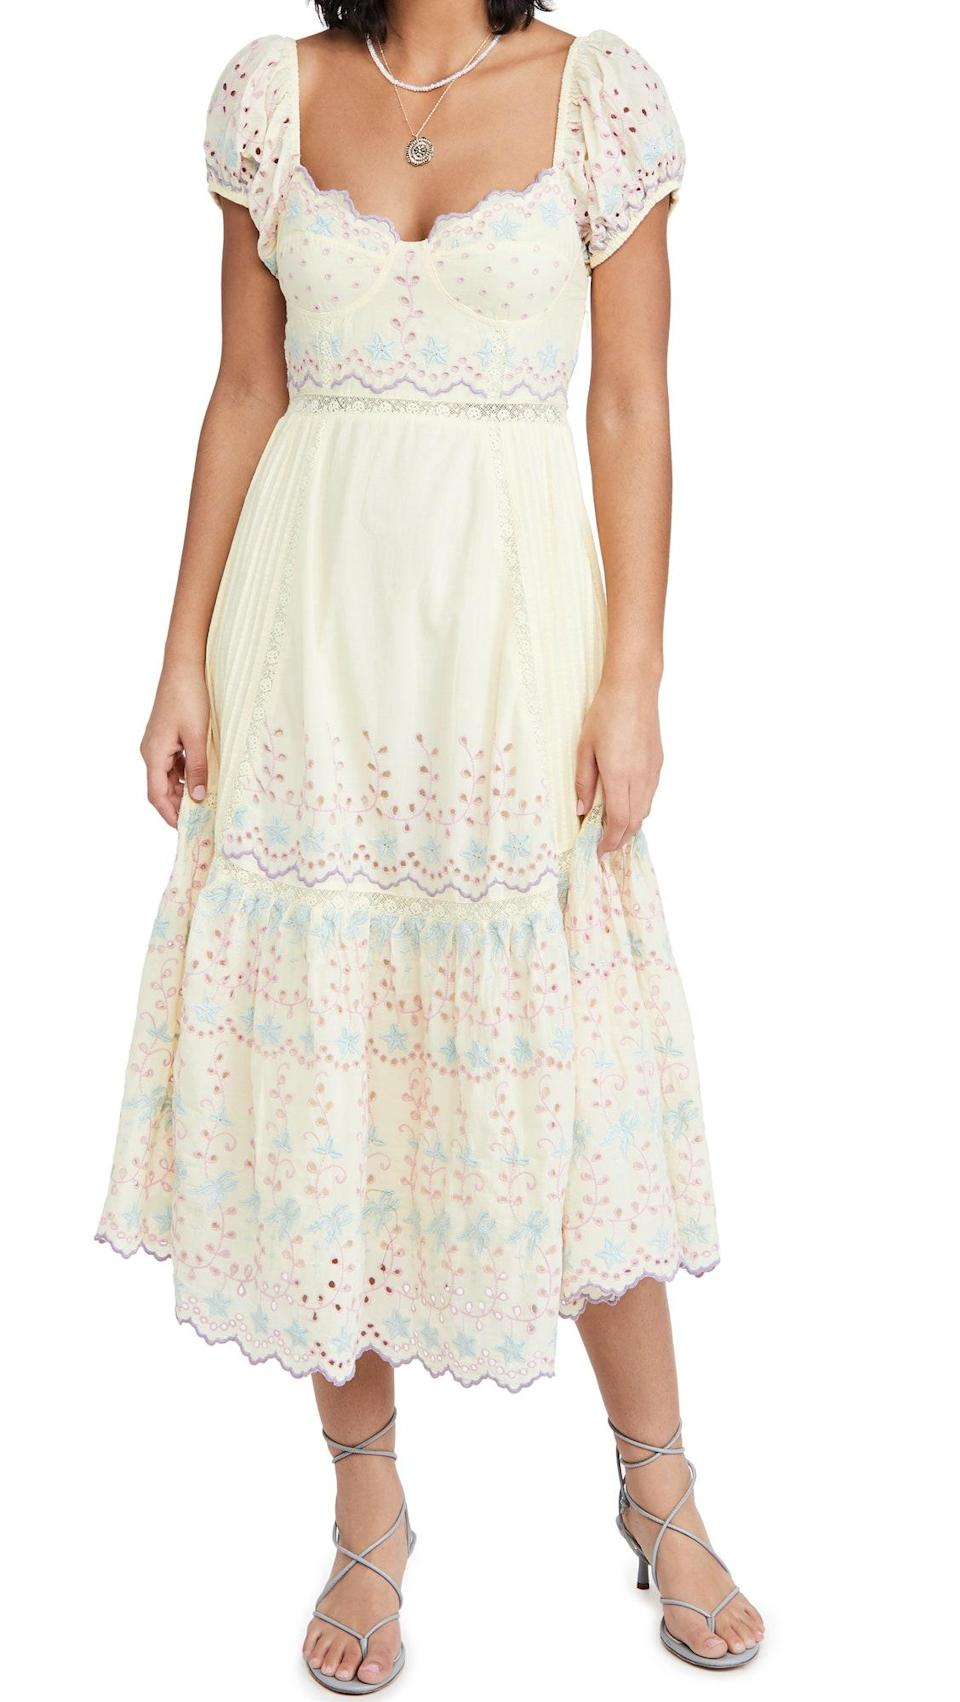 """This breezy midi has all the trappings of a classic LoveShackFancy dress: pastels, lace, and embroidered eyelet. $575, Shopbop. <a href=""""https://www.shopbop.com/magena-dress-loveshackfancy/vp/v=1/1555830841.htm"""" rel=""""nofollow noopener"""" target=""""_blank"""" data-ylk=""""slk:Get it now!"""" class=""""link rapid-noclick-resp"""">Get it now!</a>"""